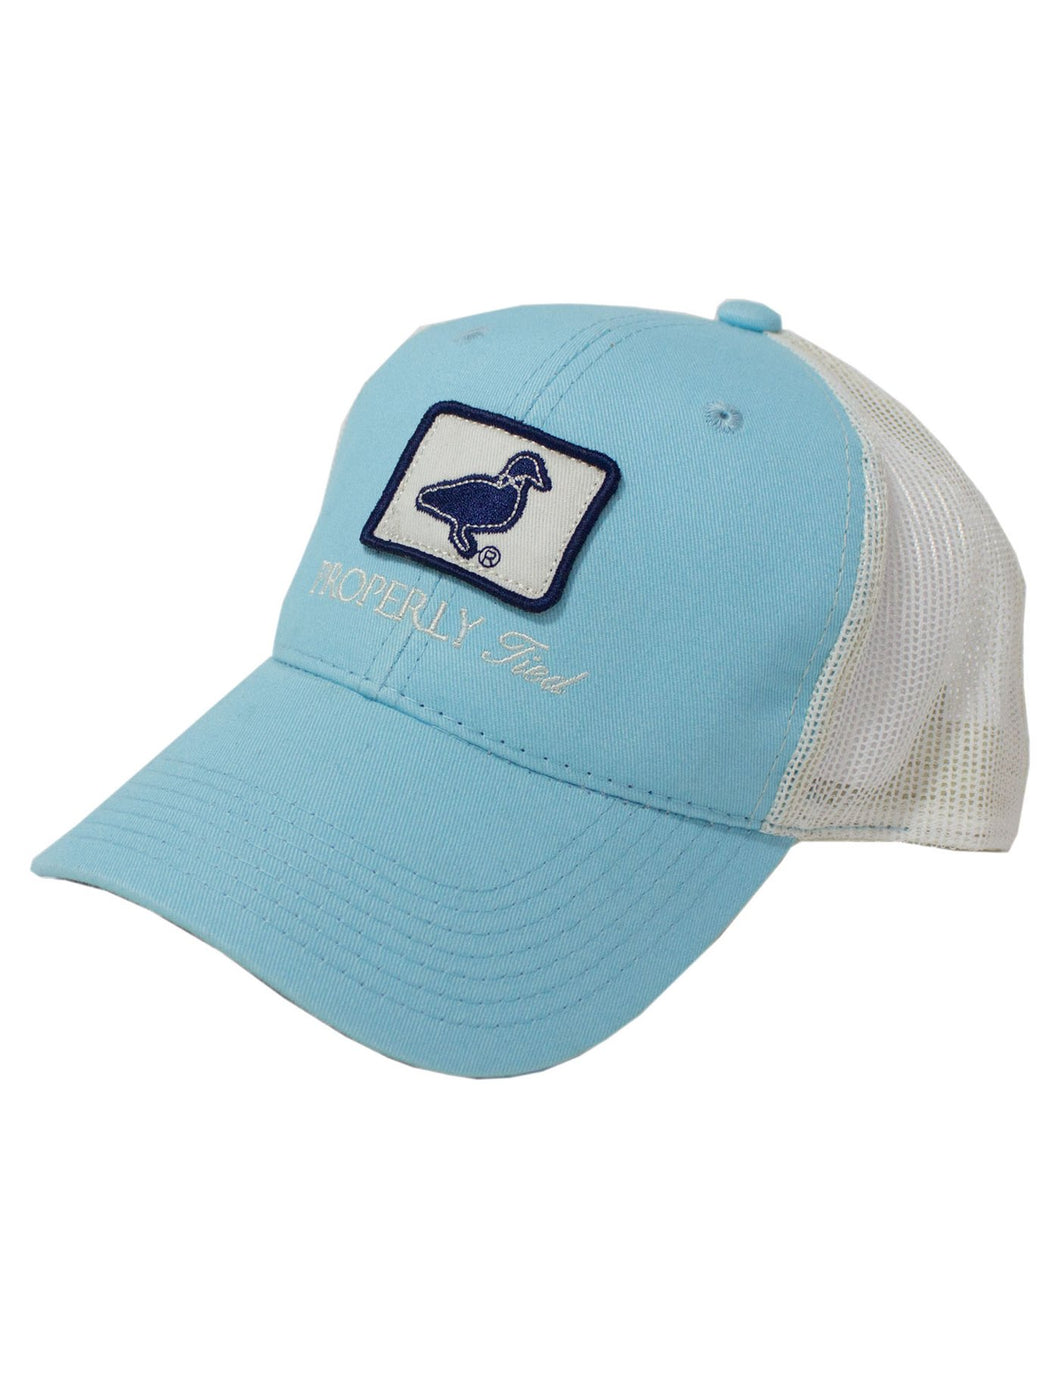 Breaker Logo Trucker Hat